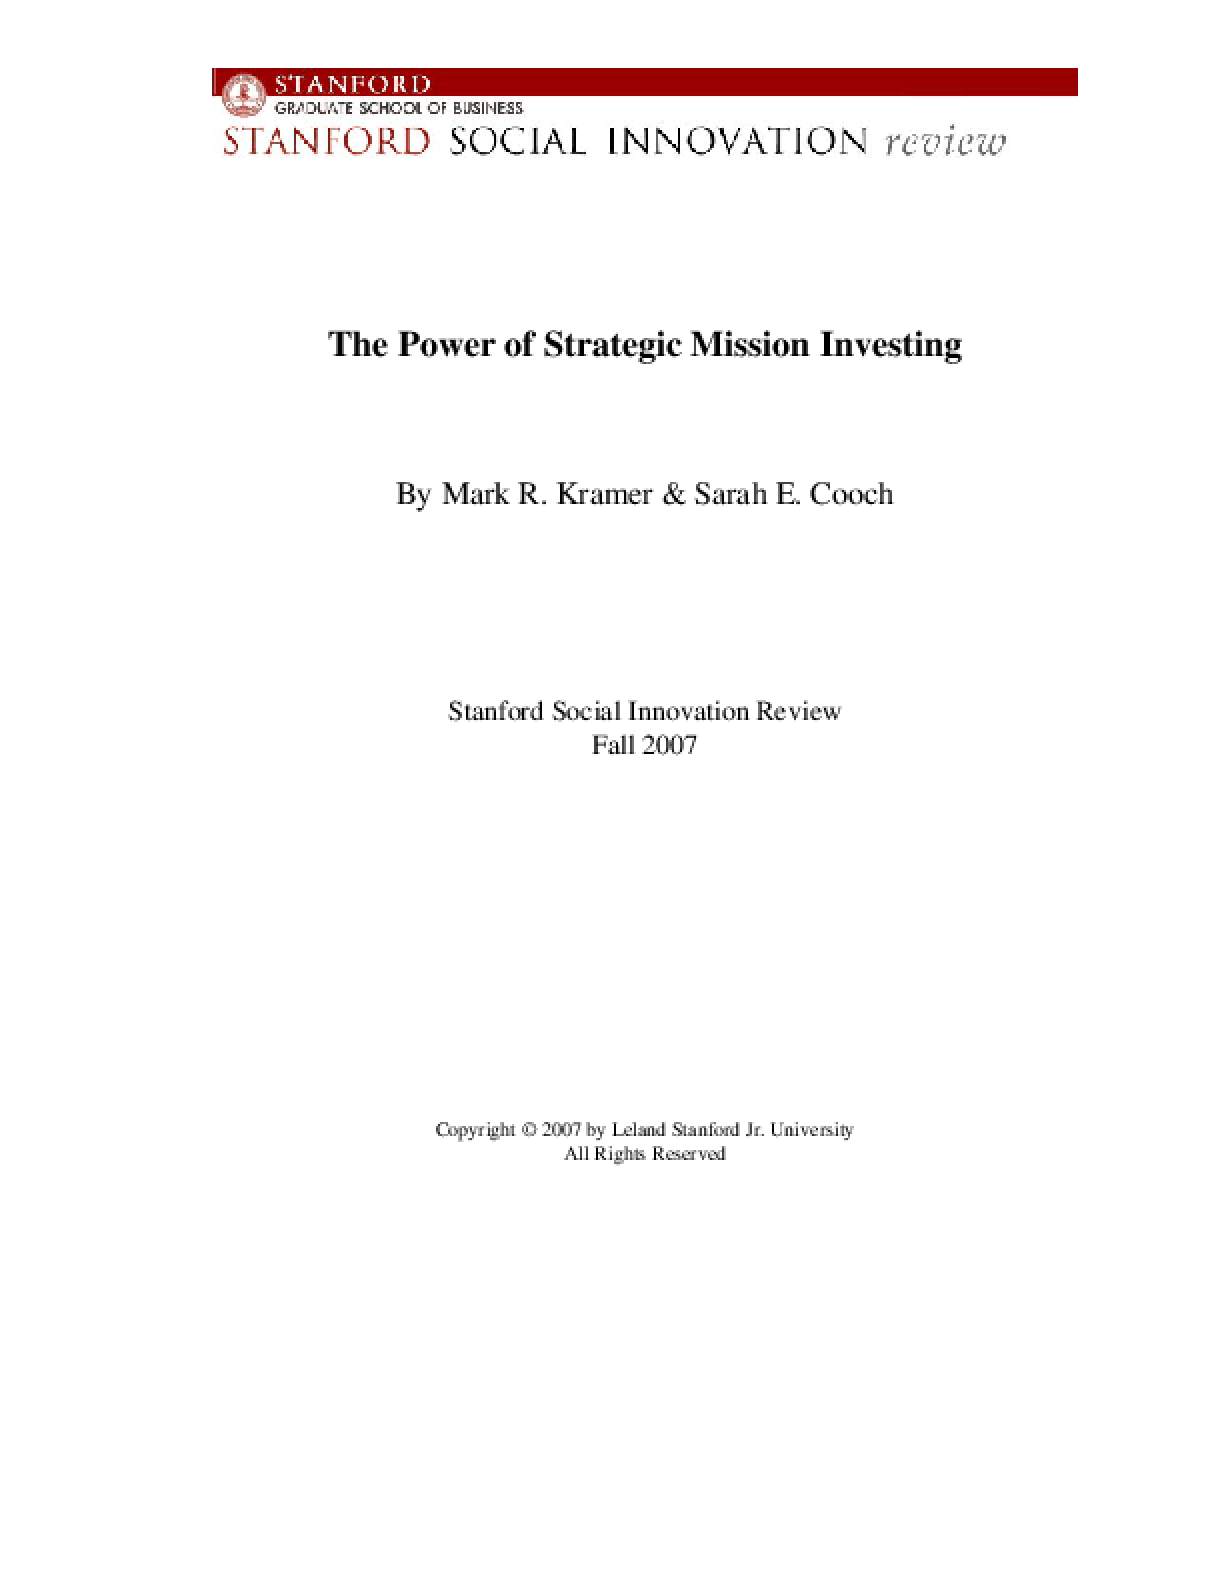 The Power of Strategic Mission Investing